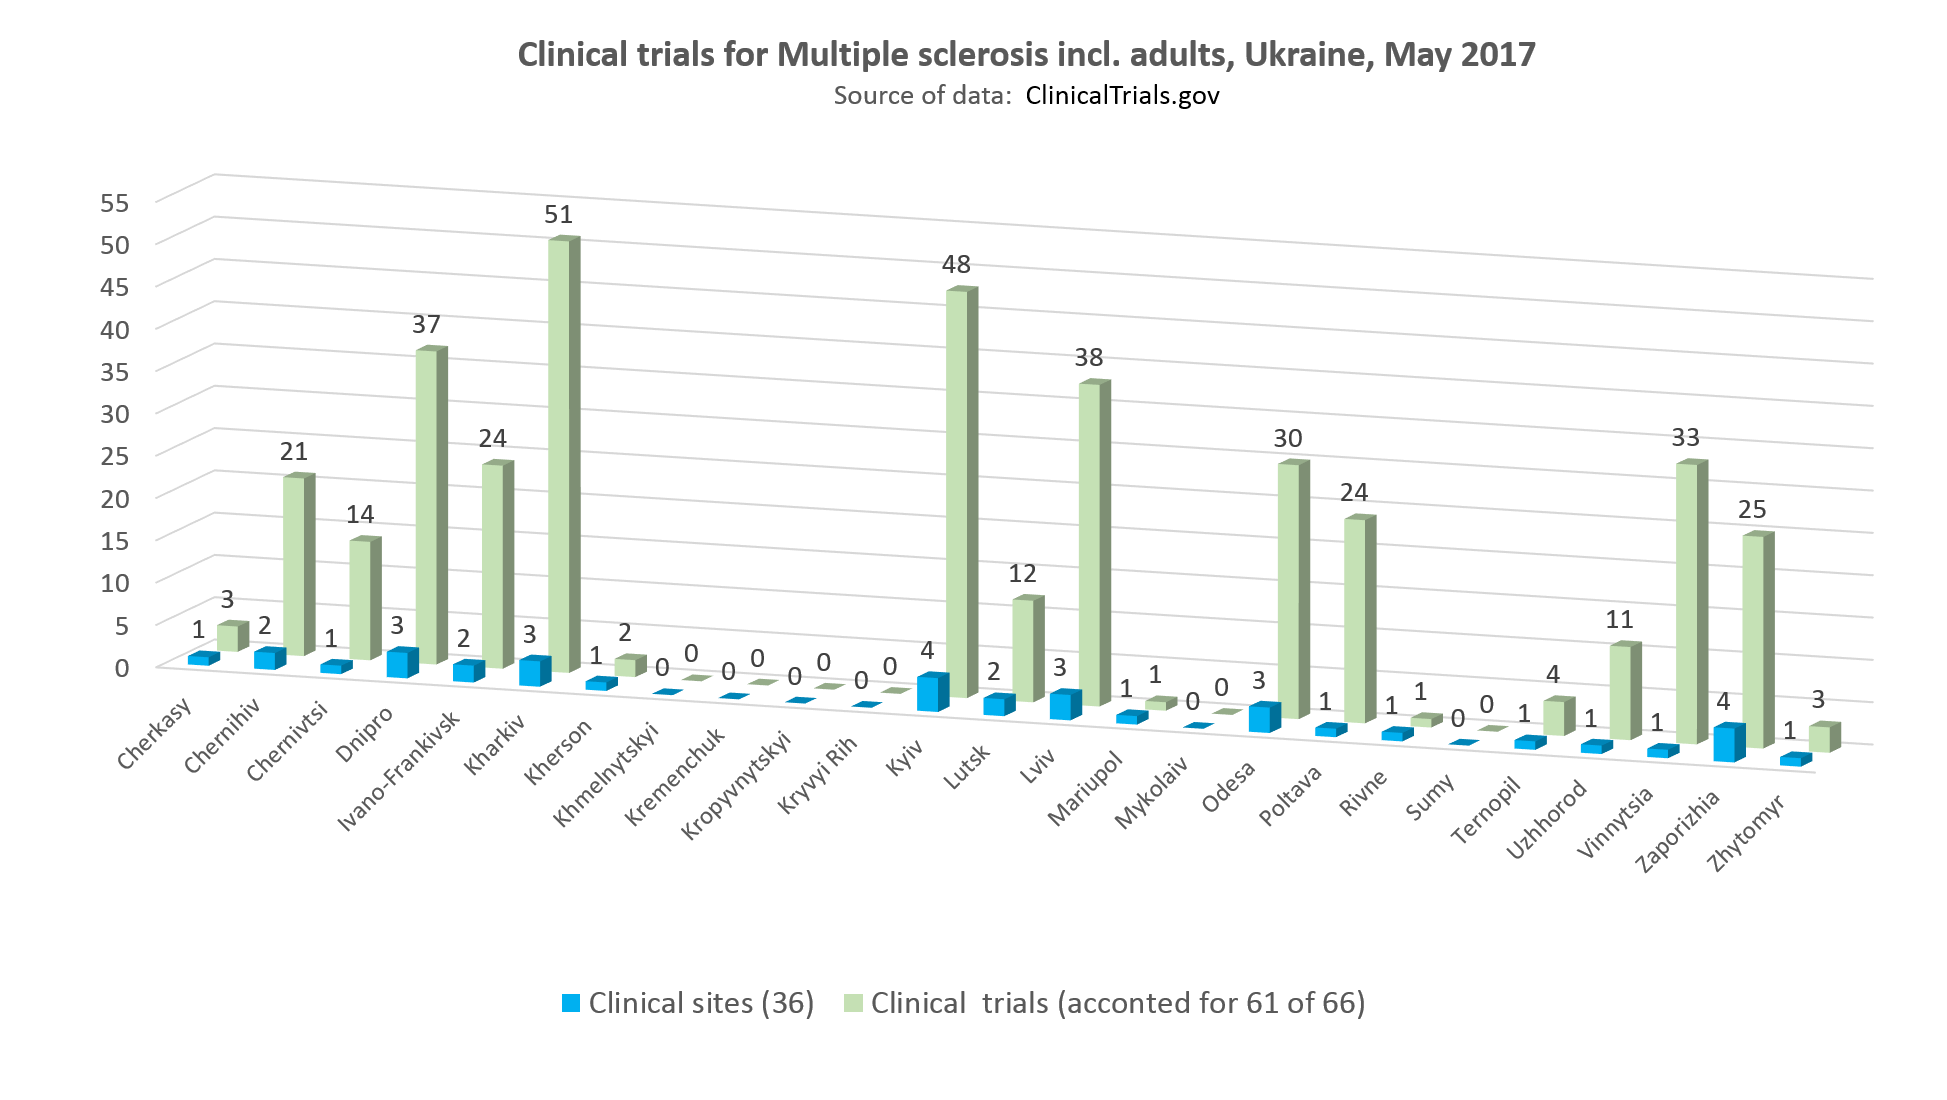 clinical trials for multiple sclerosis incl adults in Ukraine